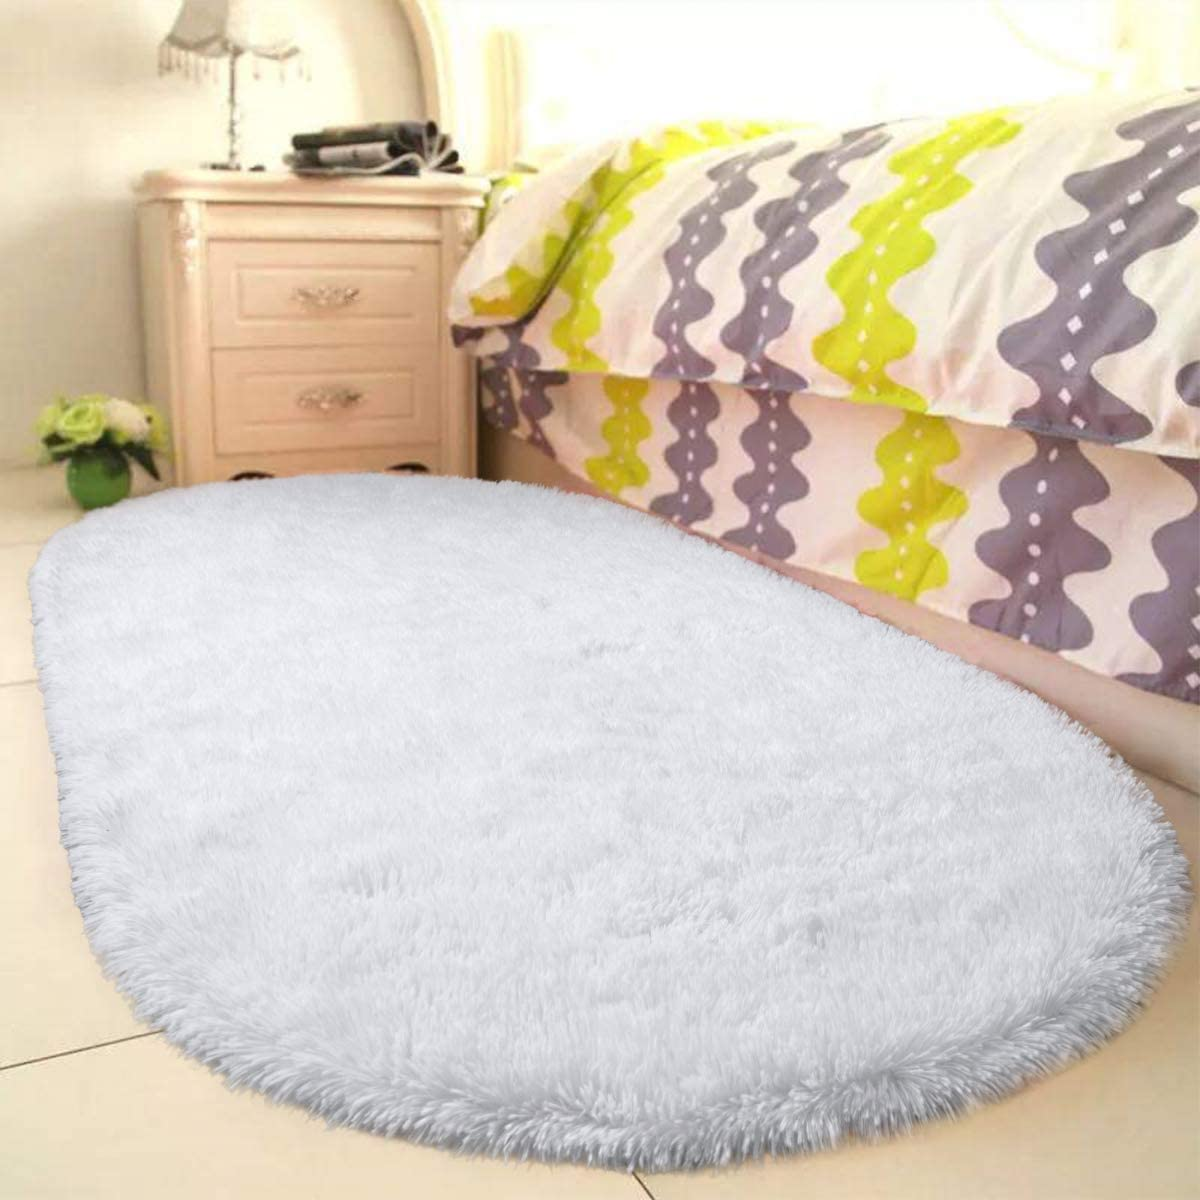 YOH Fluffy Shag Fur Area Rugs for Bedroom Girls Rooms Kids Rooms Nursery Decor Mats Non-Slip Plush Furry Fur Rugs Indoor Home Accent Floor Carpet, Oval 2.6'x5.3' White